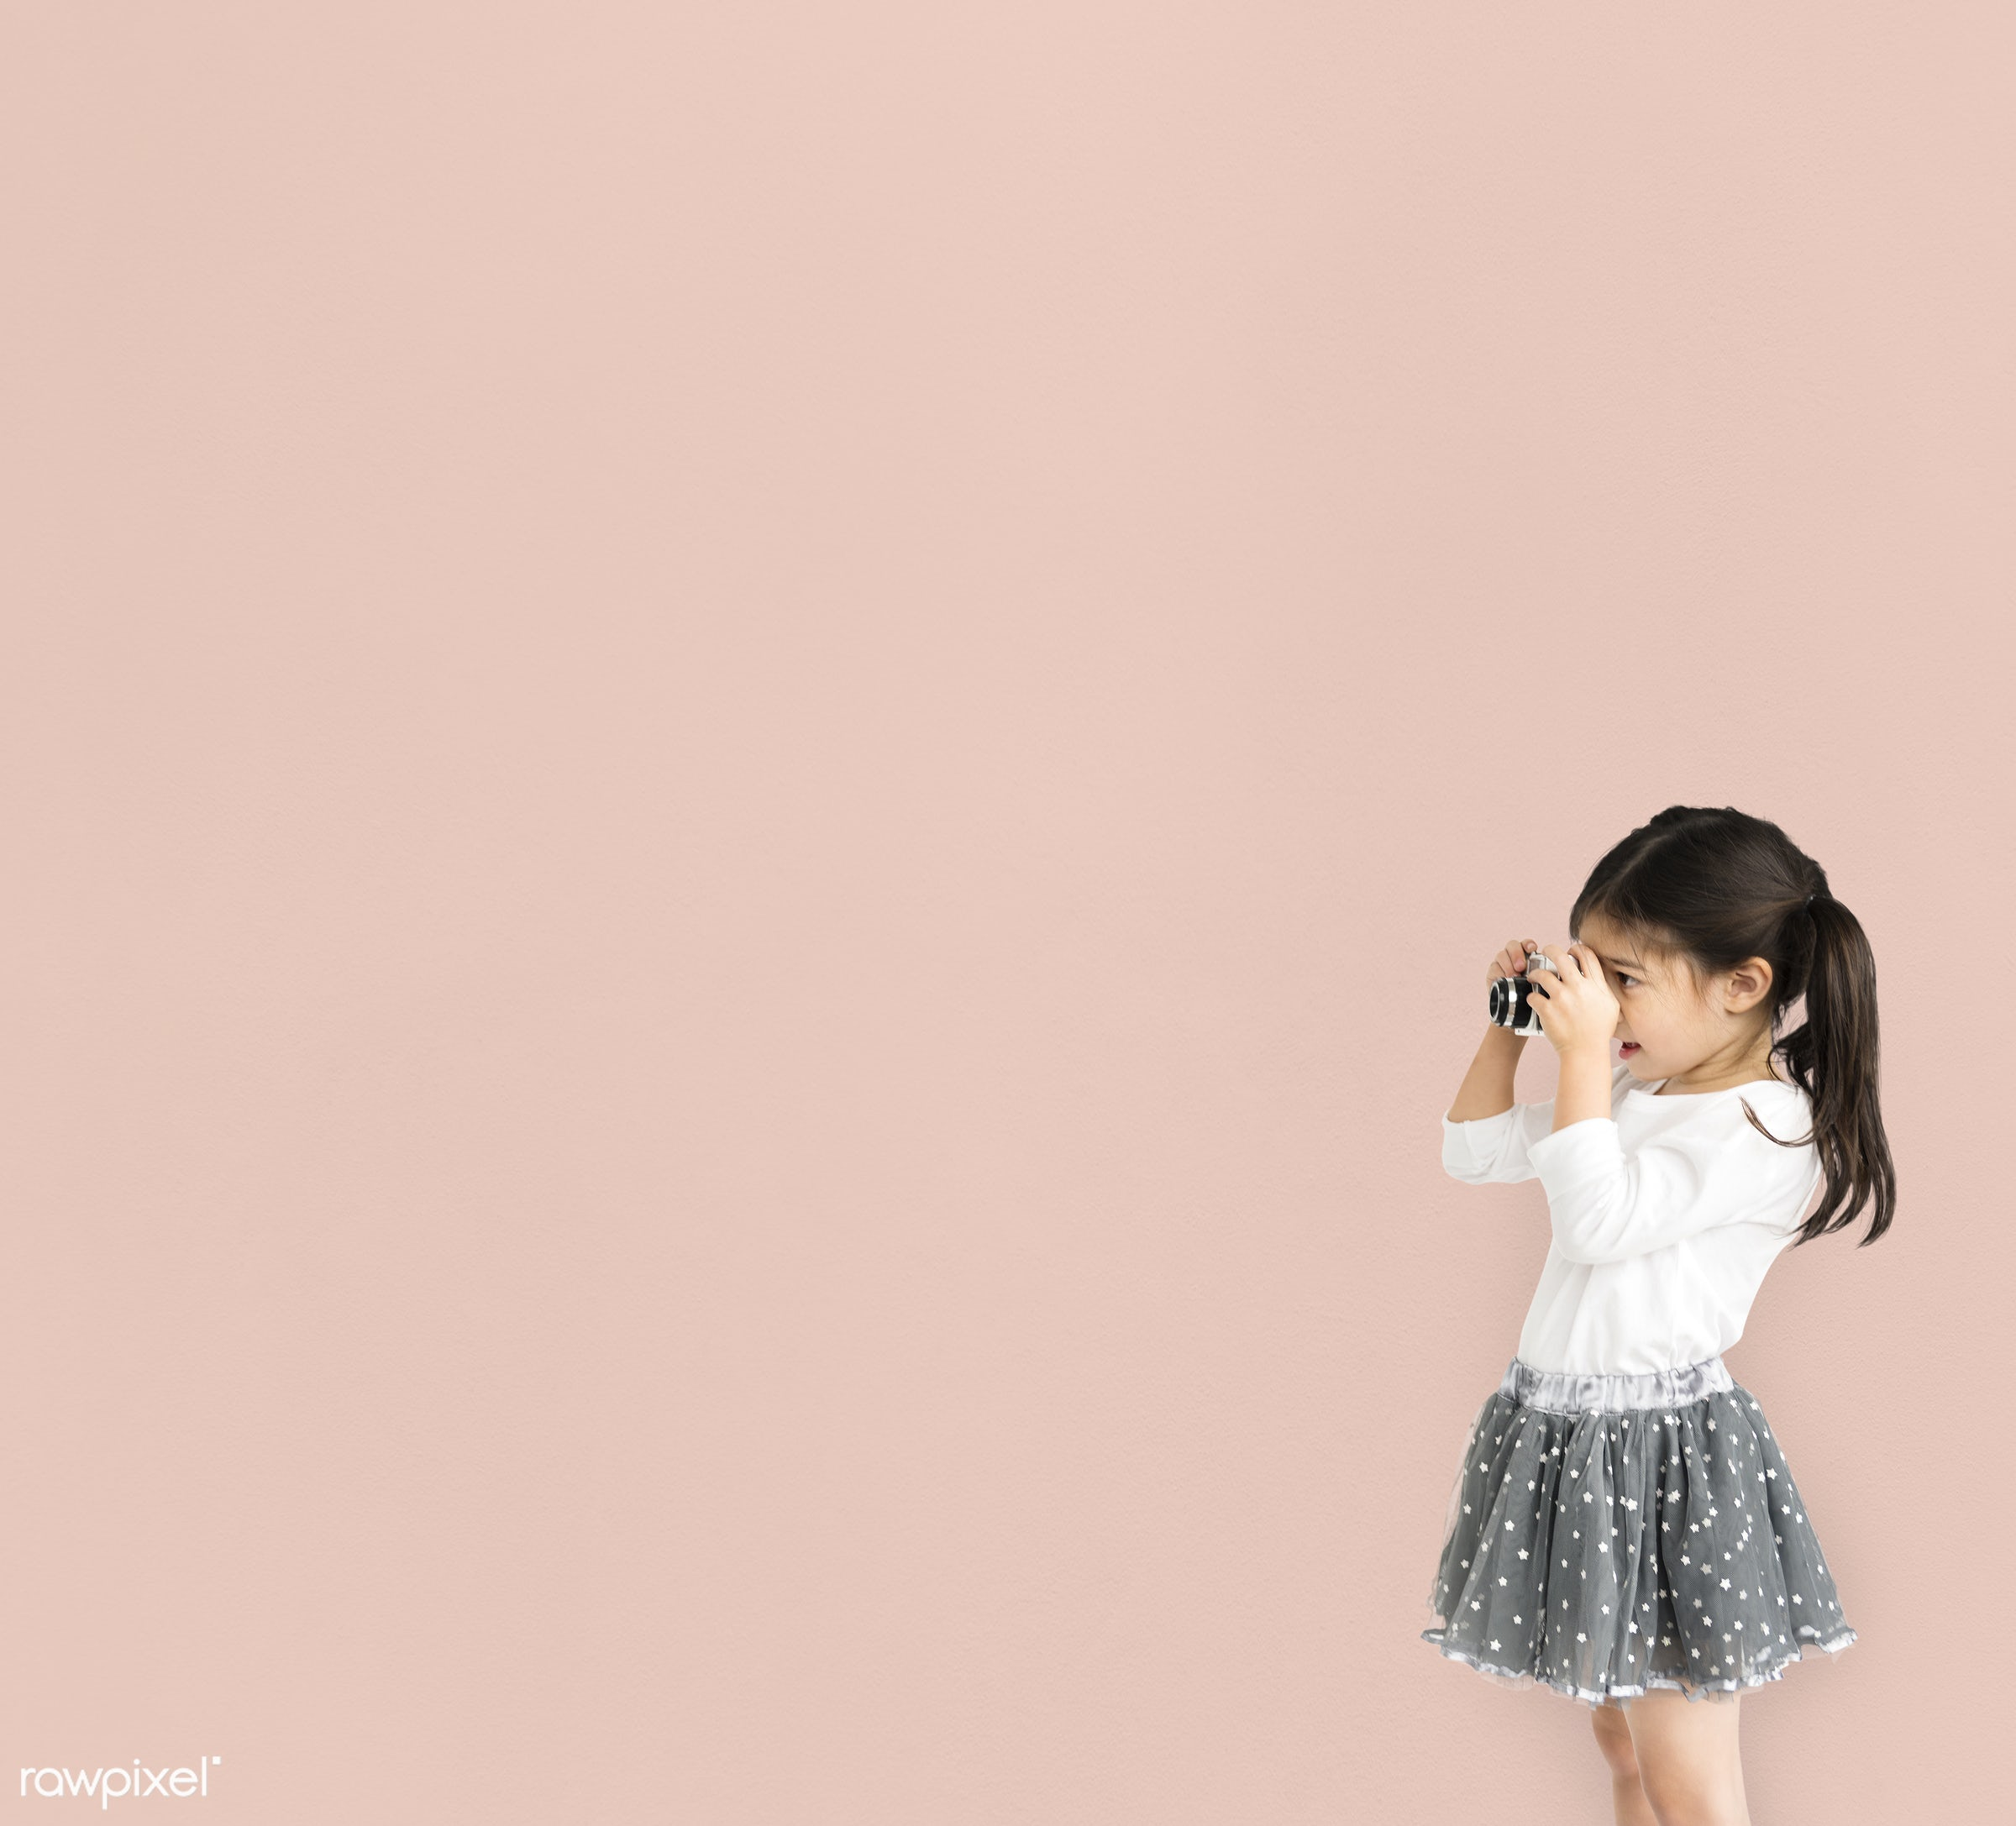 studio, person, innocent, little, people, kid, curious, solo, search, pink, childhood, alone, isolated, leisure, youth,...